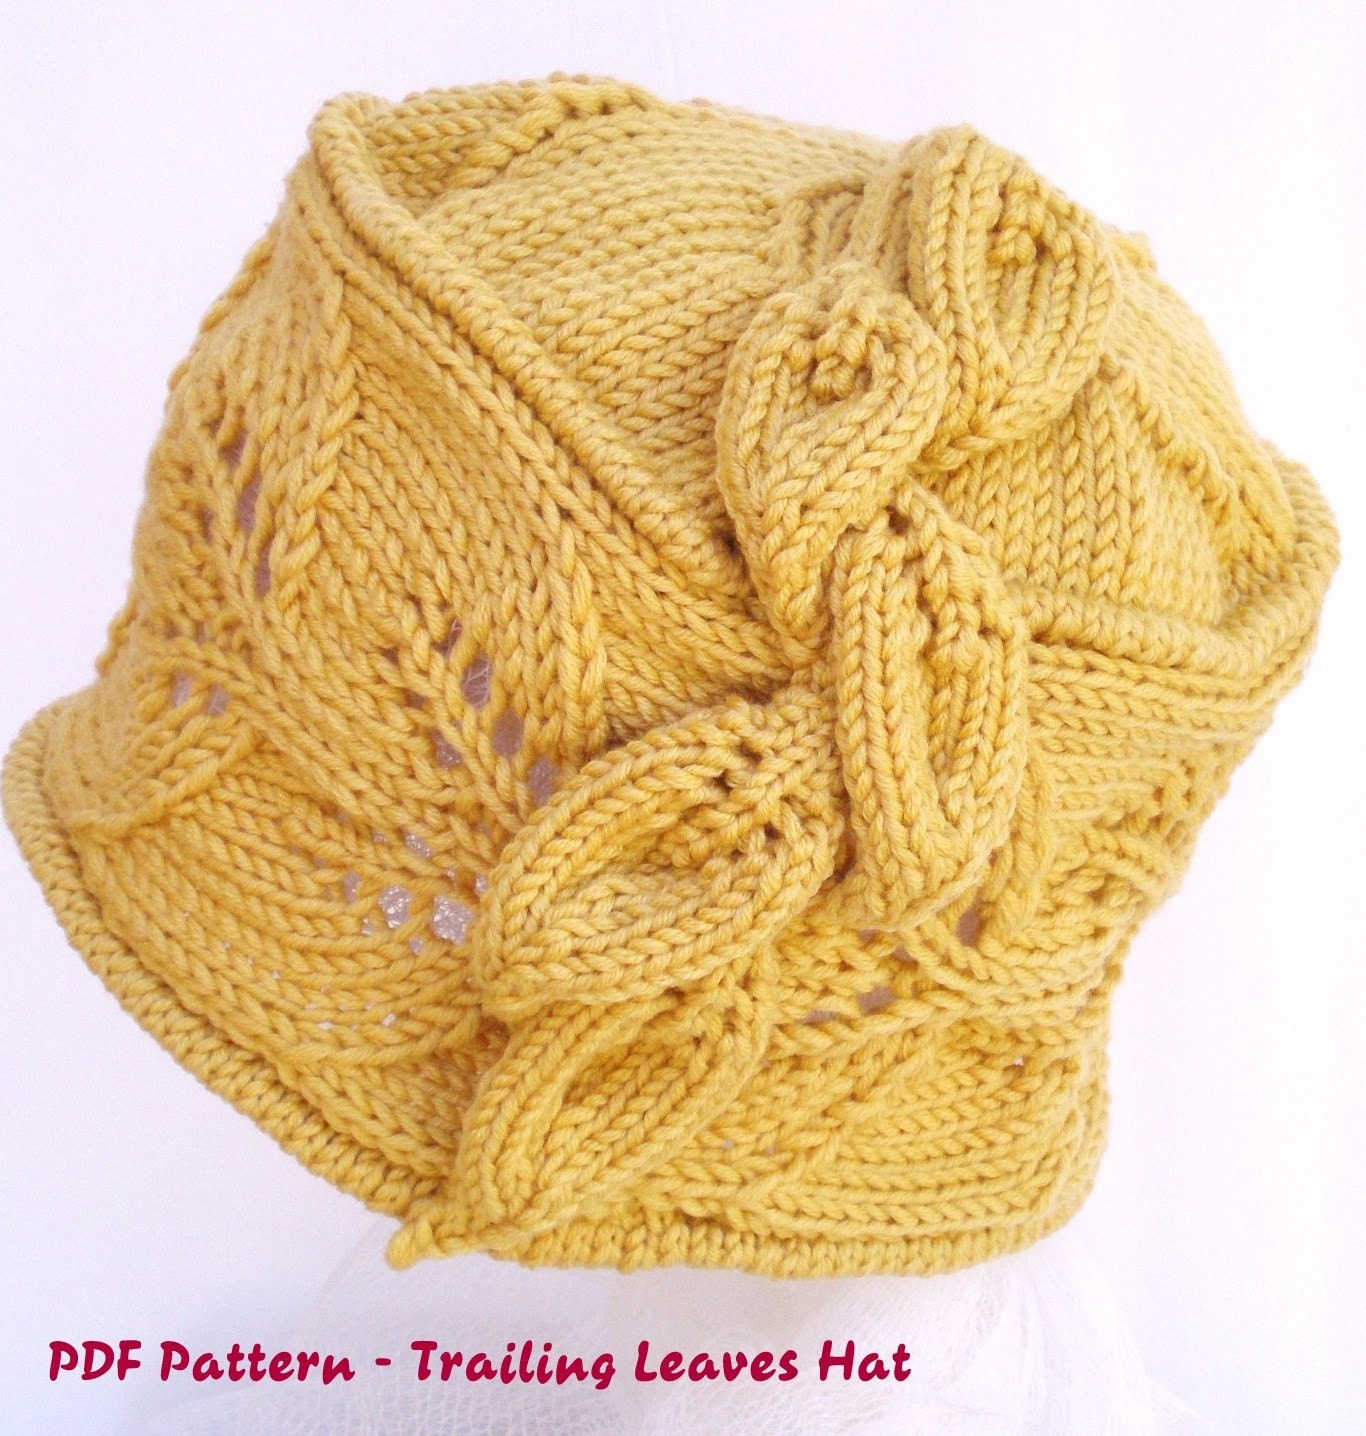 Knitting Pattern With Wool : PDF Knitting Pattern Wool Lace Cloche Hat Trailing Leaves